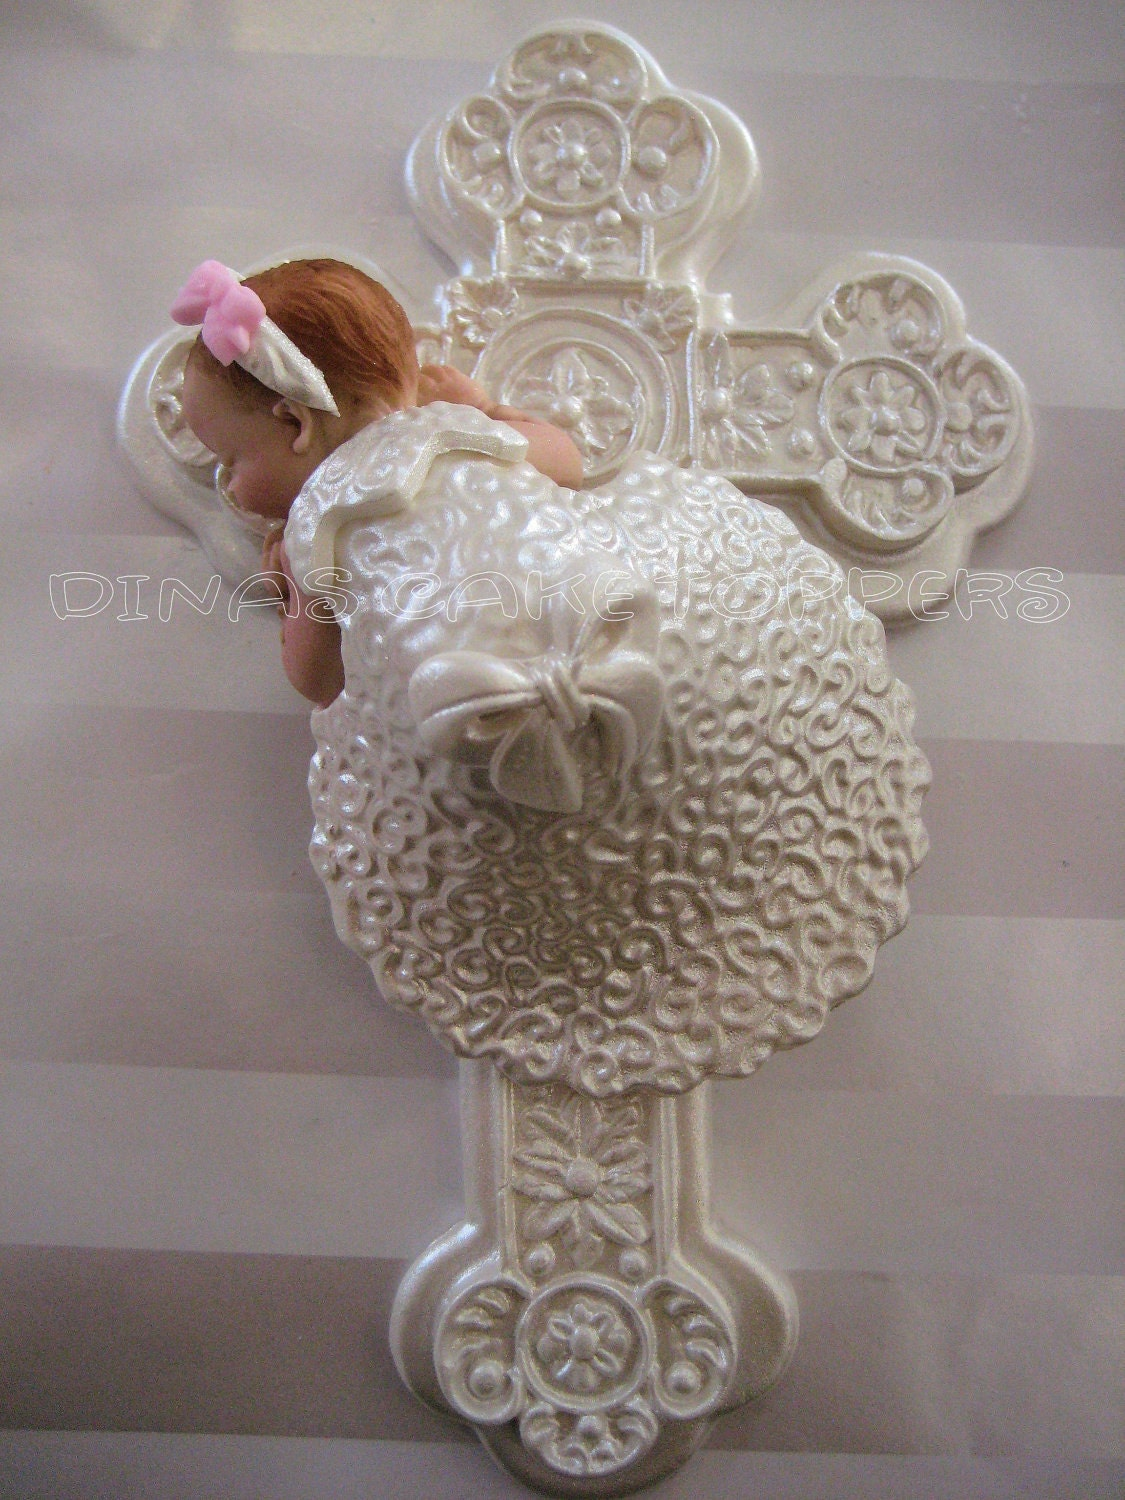 BAPTISM CHRISTENING Gown Cake Topper Cross by DinasCakeToppers